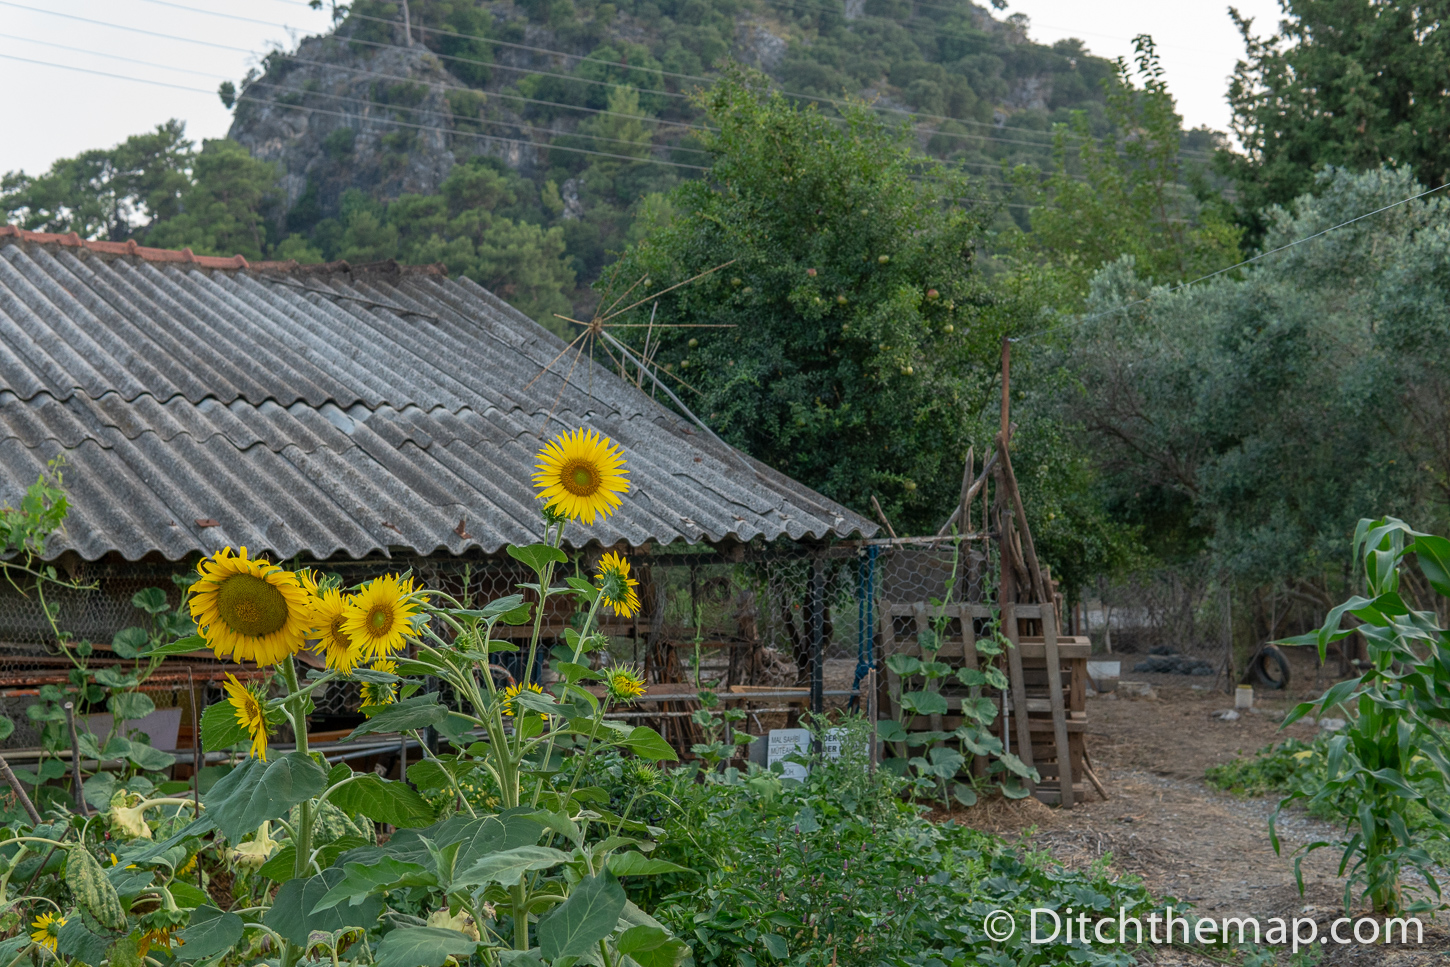 Sunflowers and farmhouse in Turkey